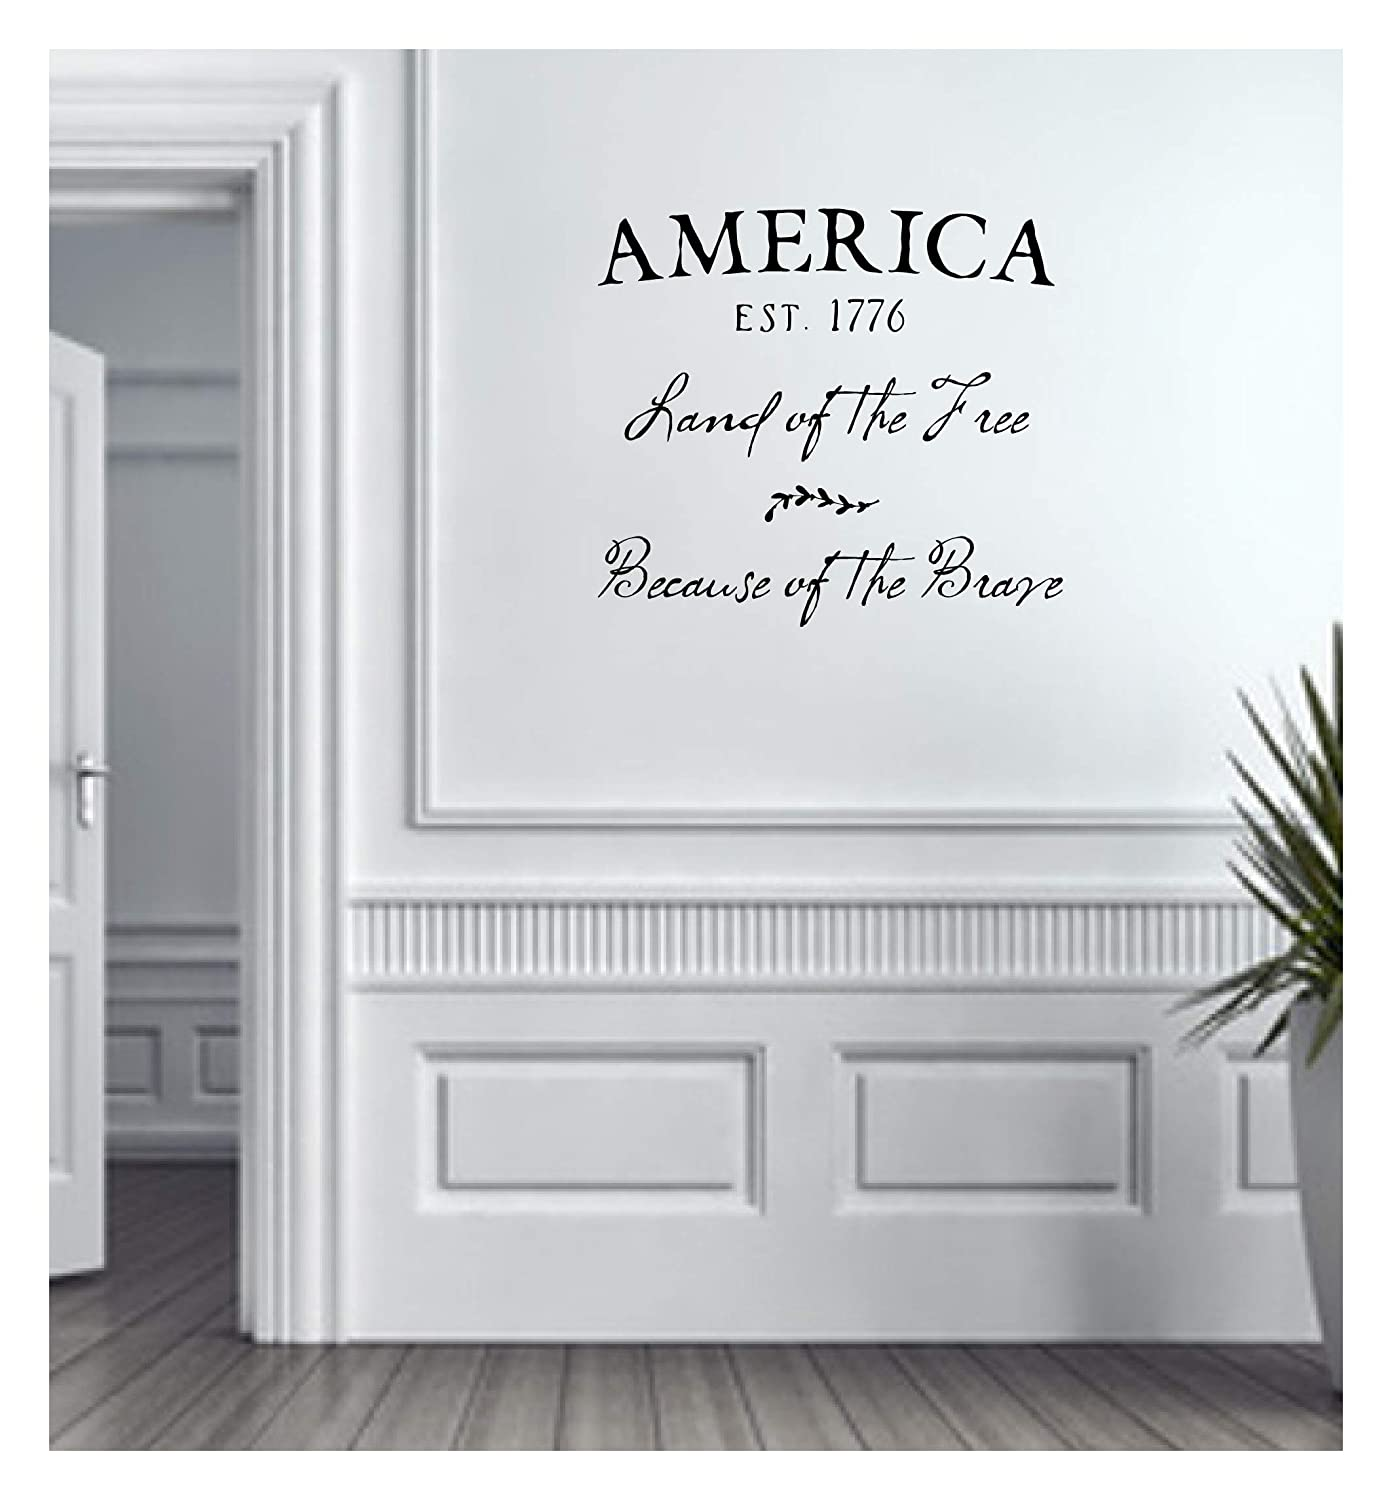 Amazon Com America Established 1776 Land Of The Free Because Of The Brave Vinyl Wall Decal Handmade